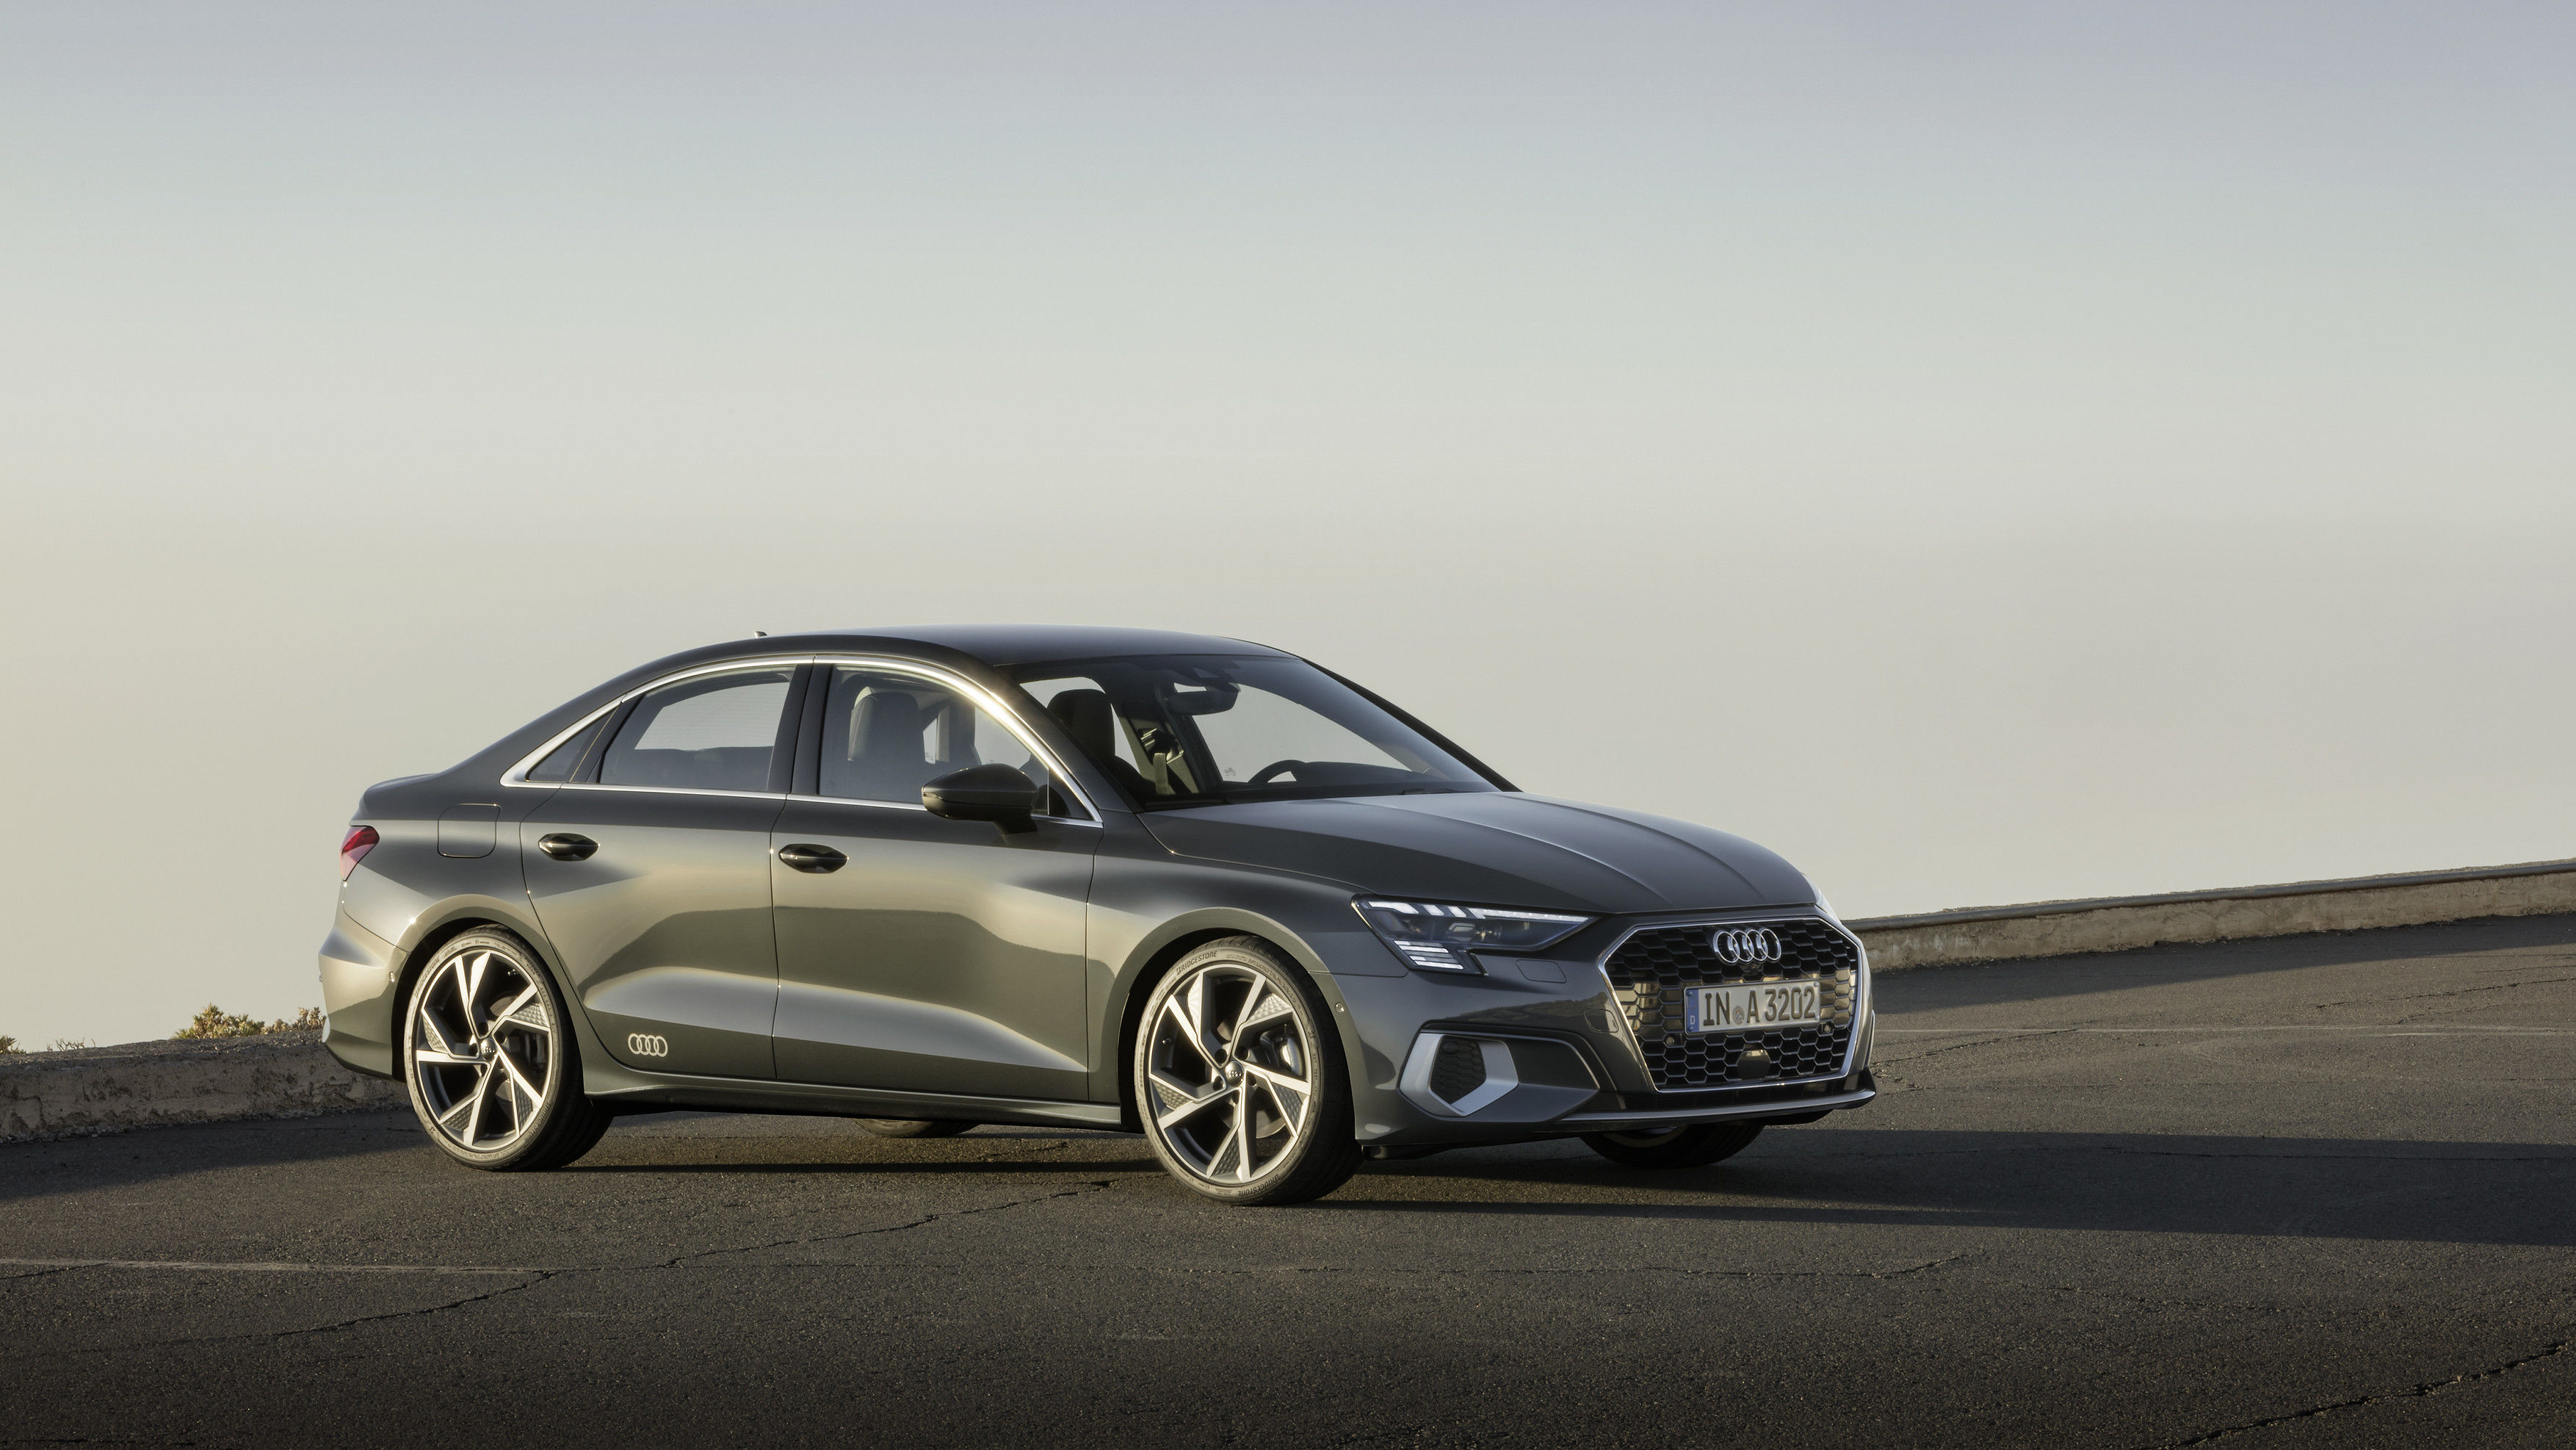 Prices of the new Audi A3 sedan will start at 34,900 euros (  <span class='webrupee'>₹</span>29 lakh) and will go up to 44,910 euros (  <span class='webrupee'>₹</span>37.5 lakh).